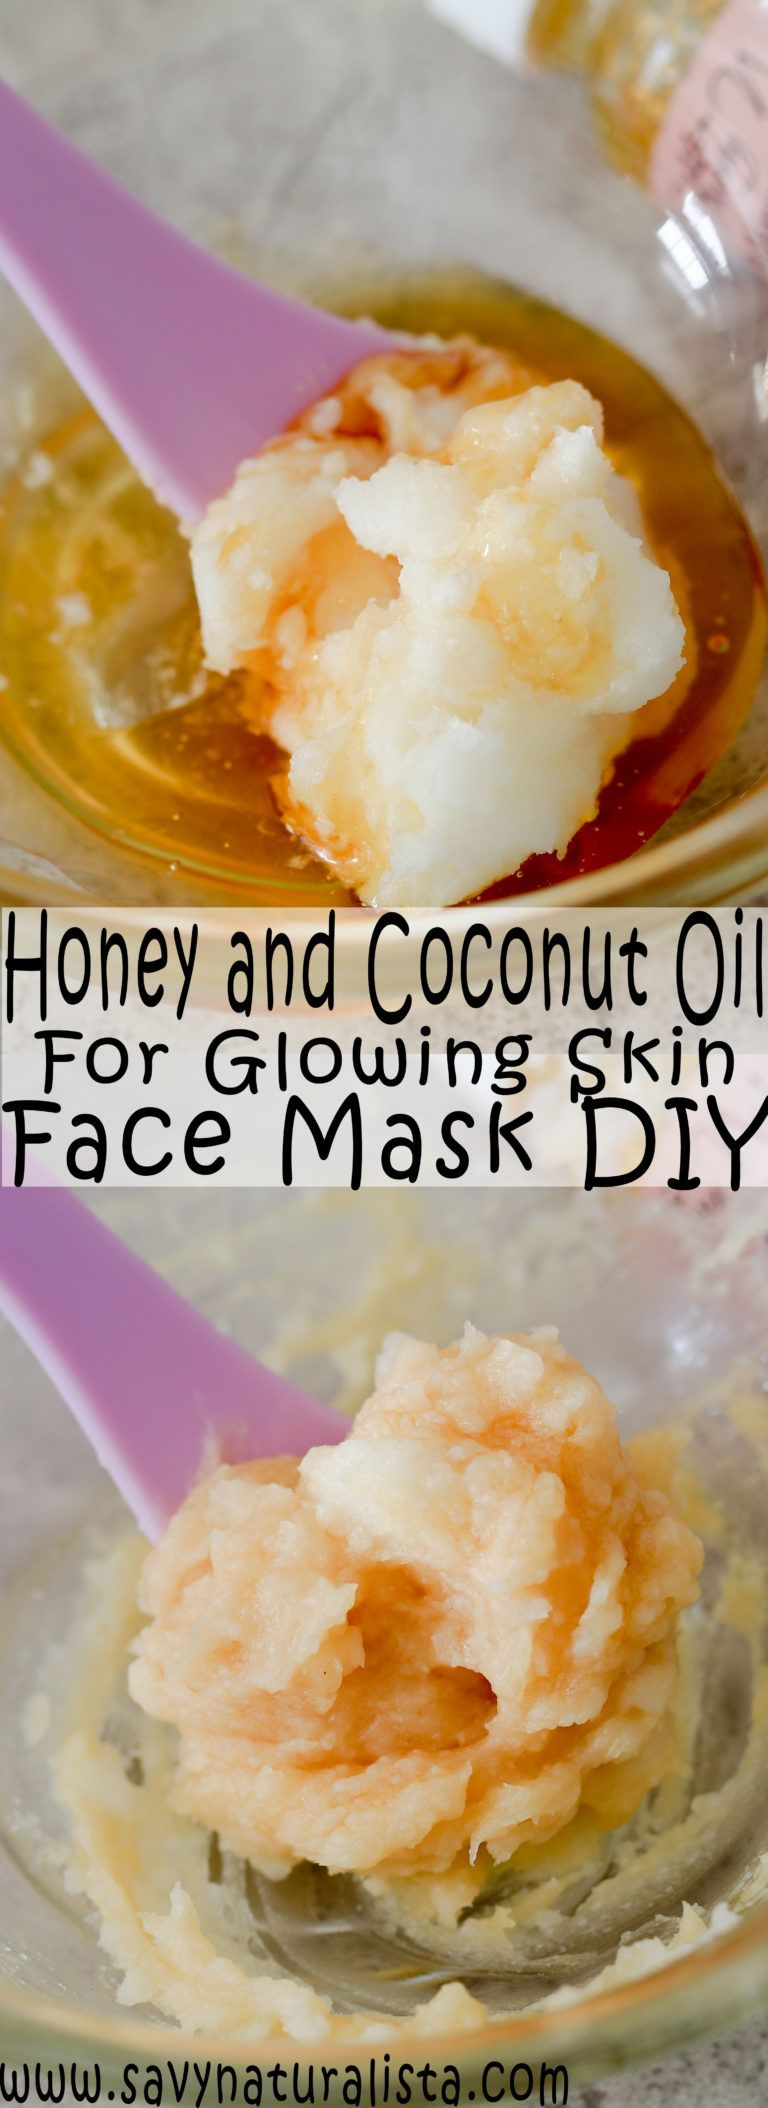 Looking to give yourfacea dewy and naturally glow look try thistwo-ingredientface mask. Coconut oil and honey is all you need for this skincare DIY!